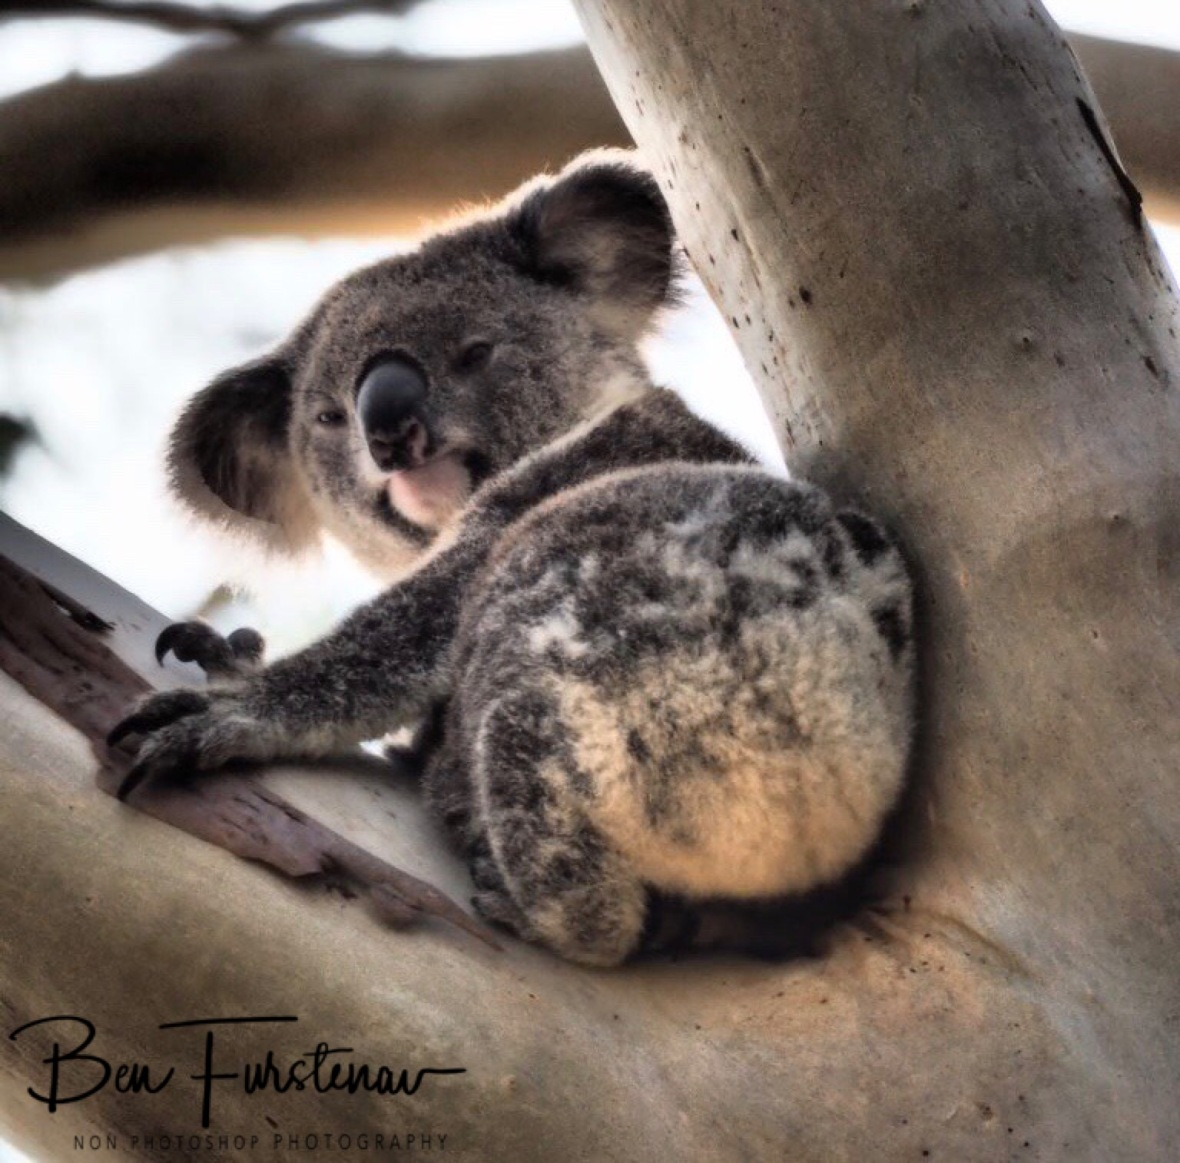 This koala looks a bit mischievous at Woodburn, Northern New South Wales, Australia